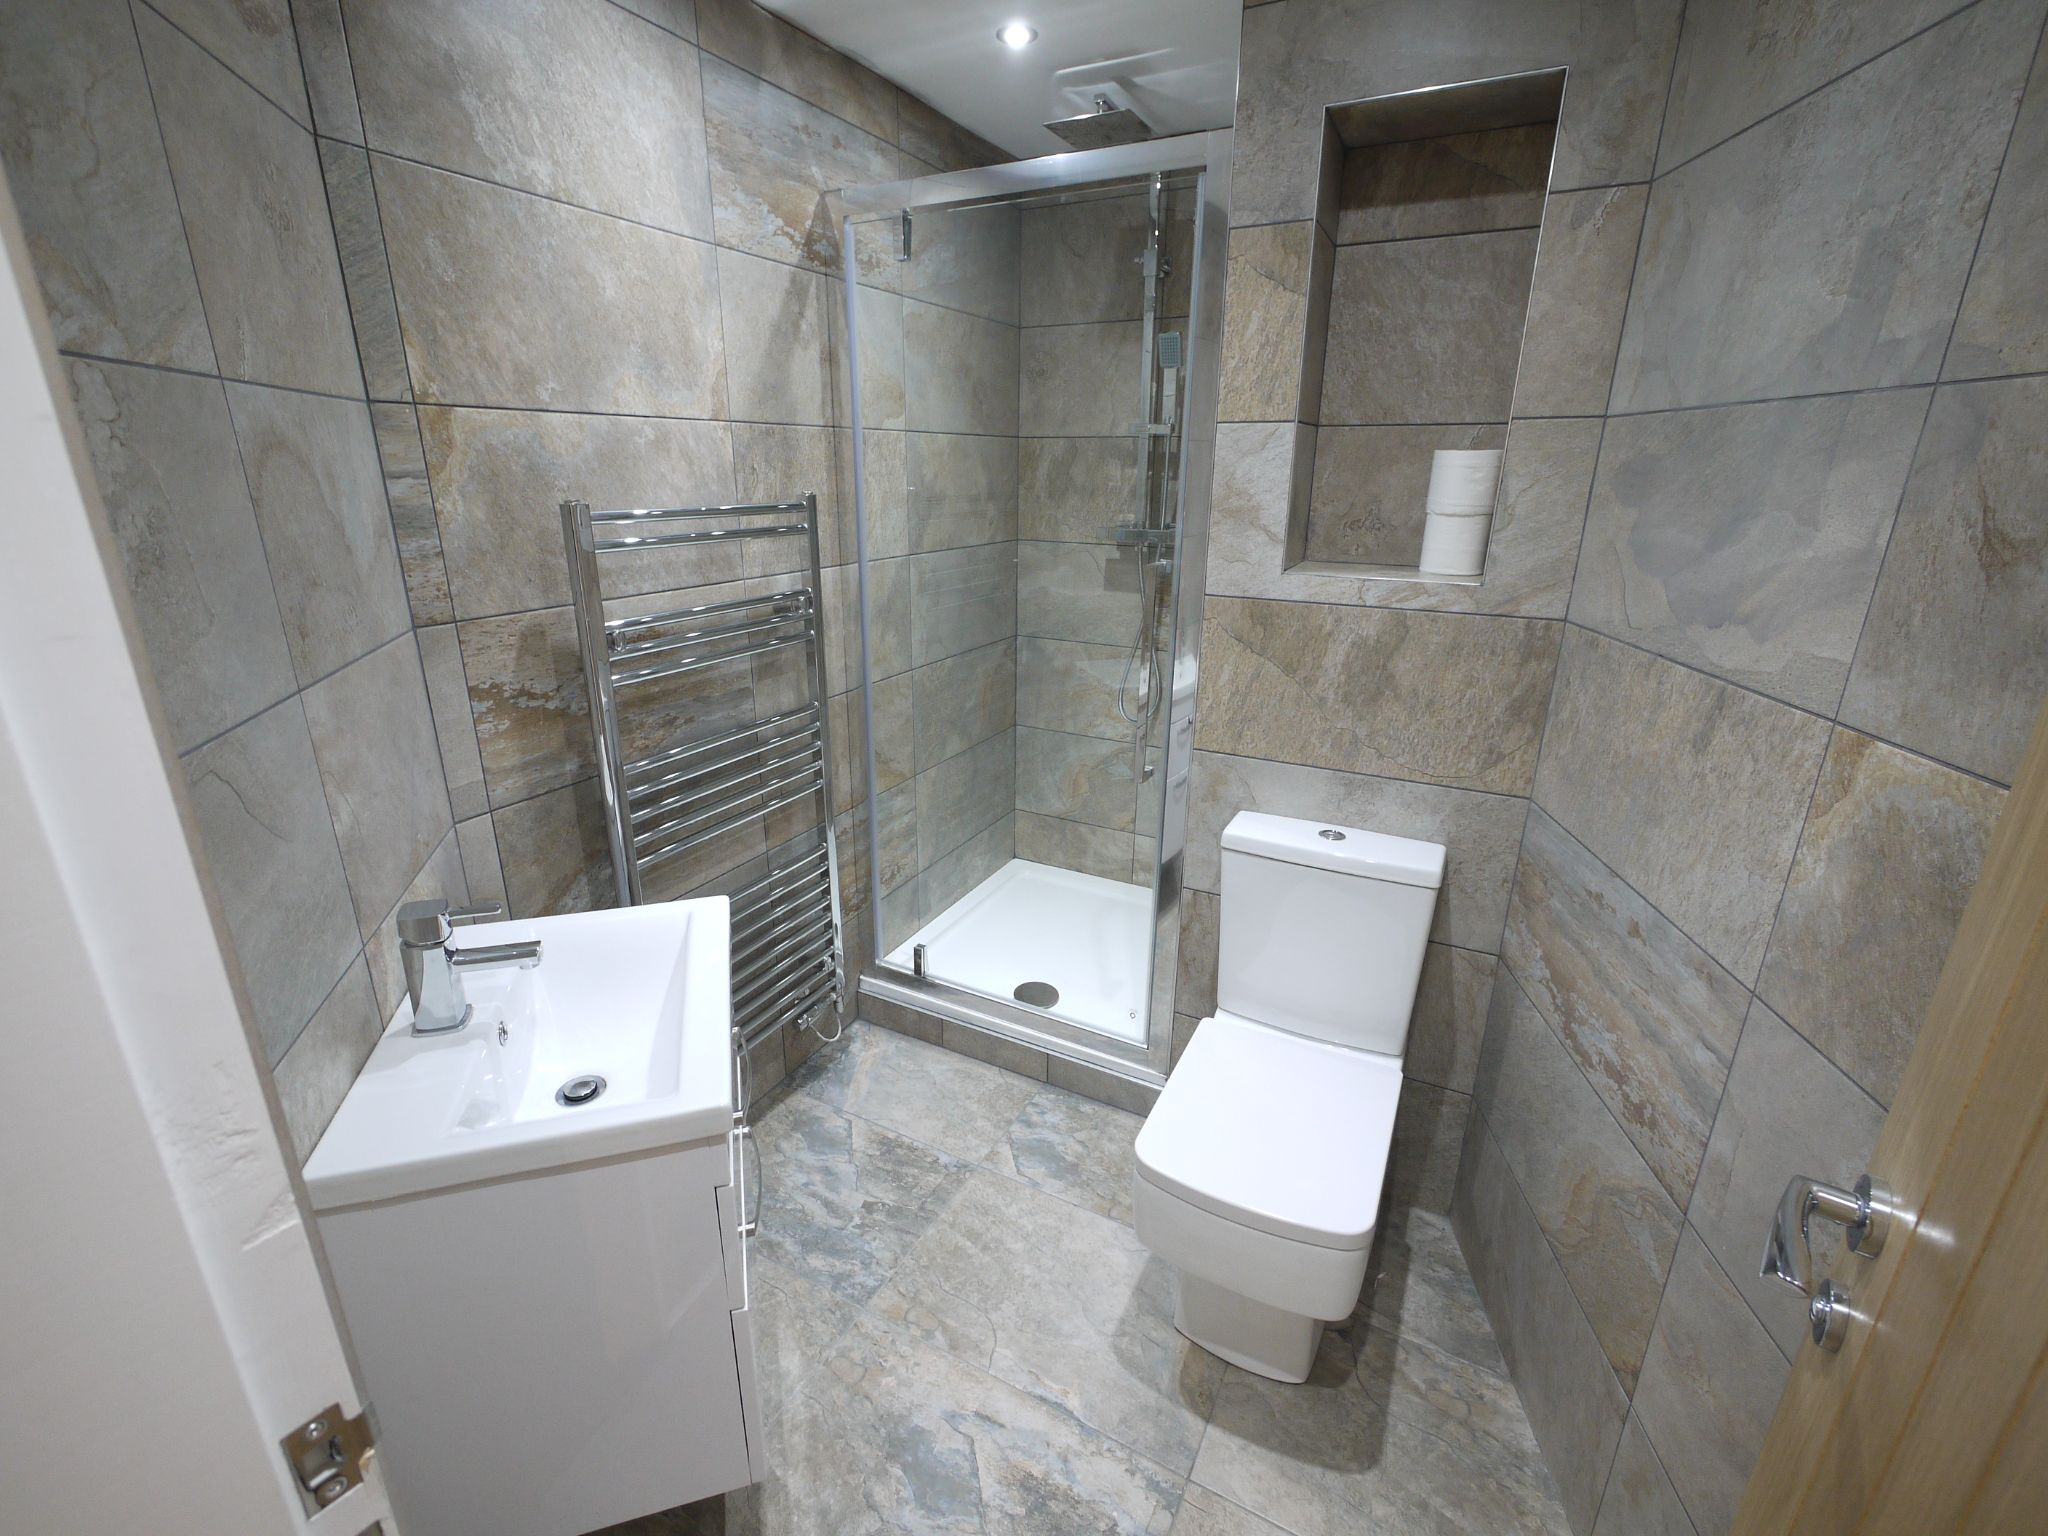 3 bedroom detached house For Sale in Brighouse - En-suite shower room.